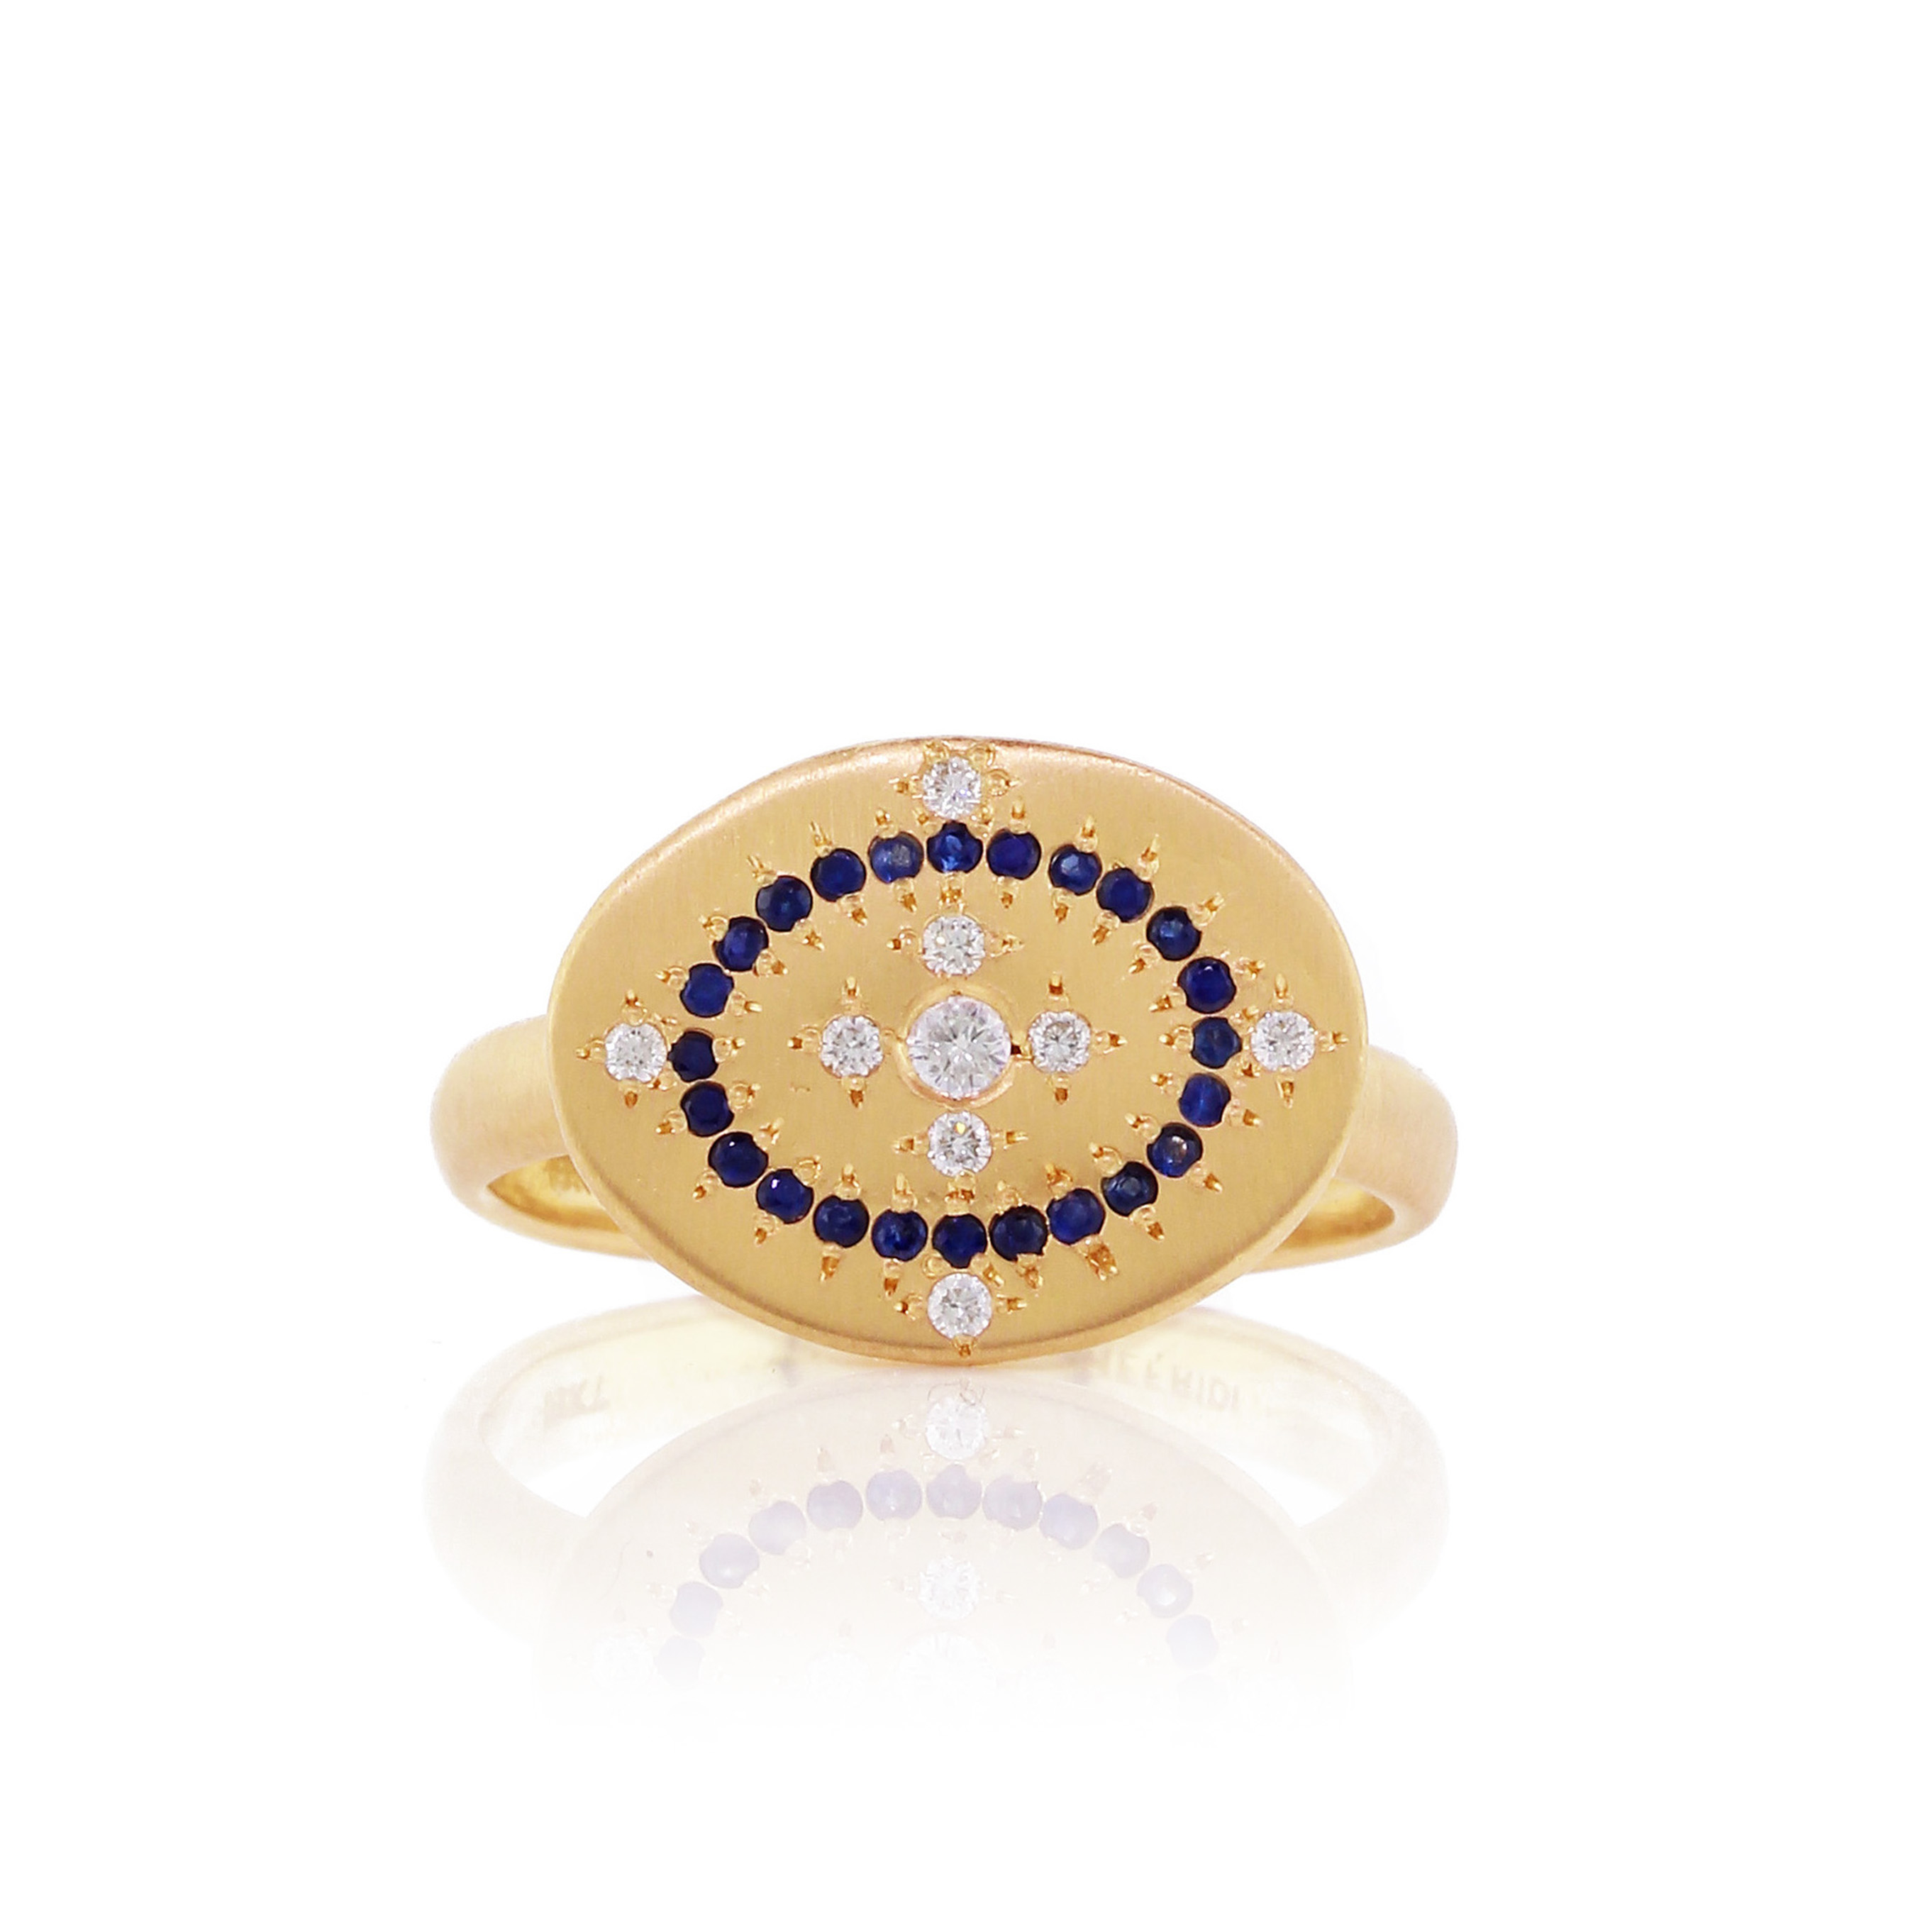 Diamond, Sapphire, And Gold Ring, $2,700